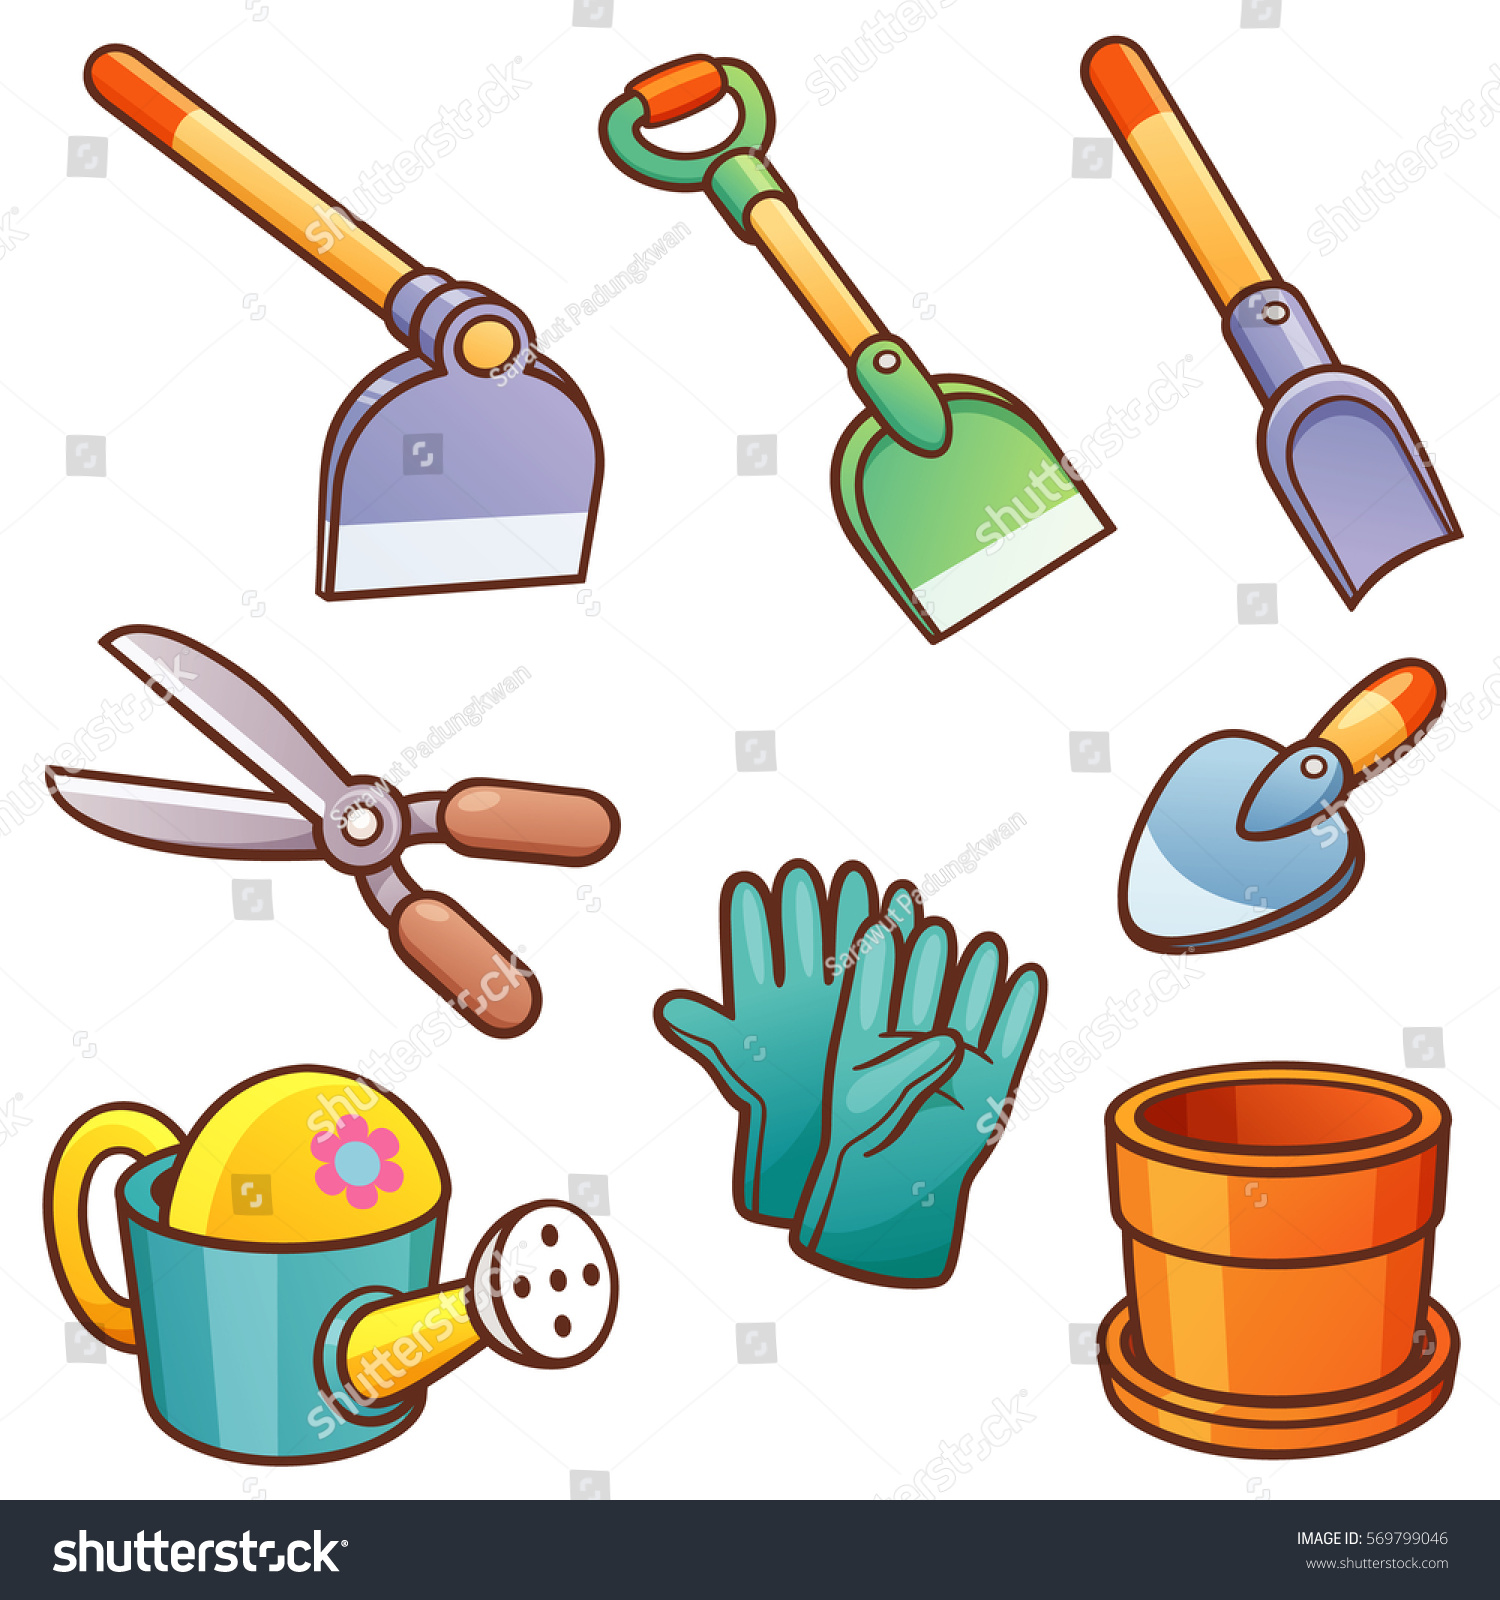 Vector illustration cartoon garden tools stock vector for Gardening tools cartoon